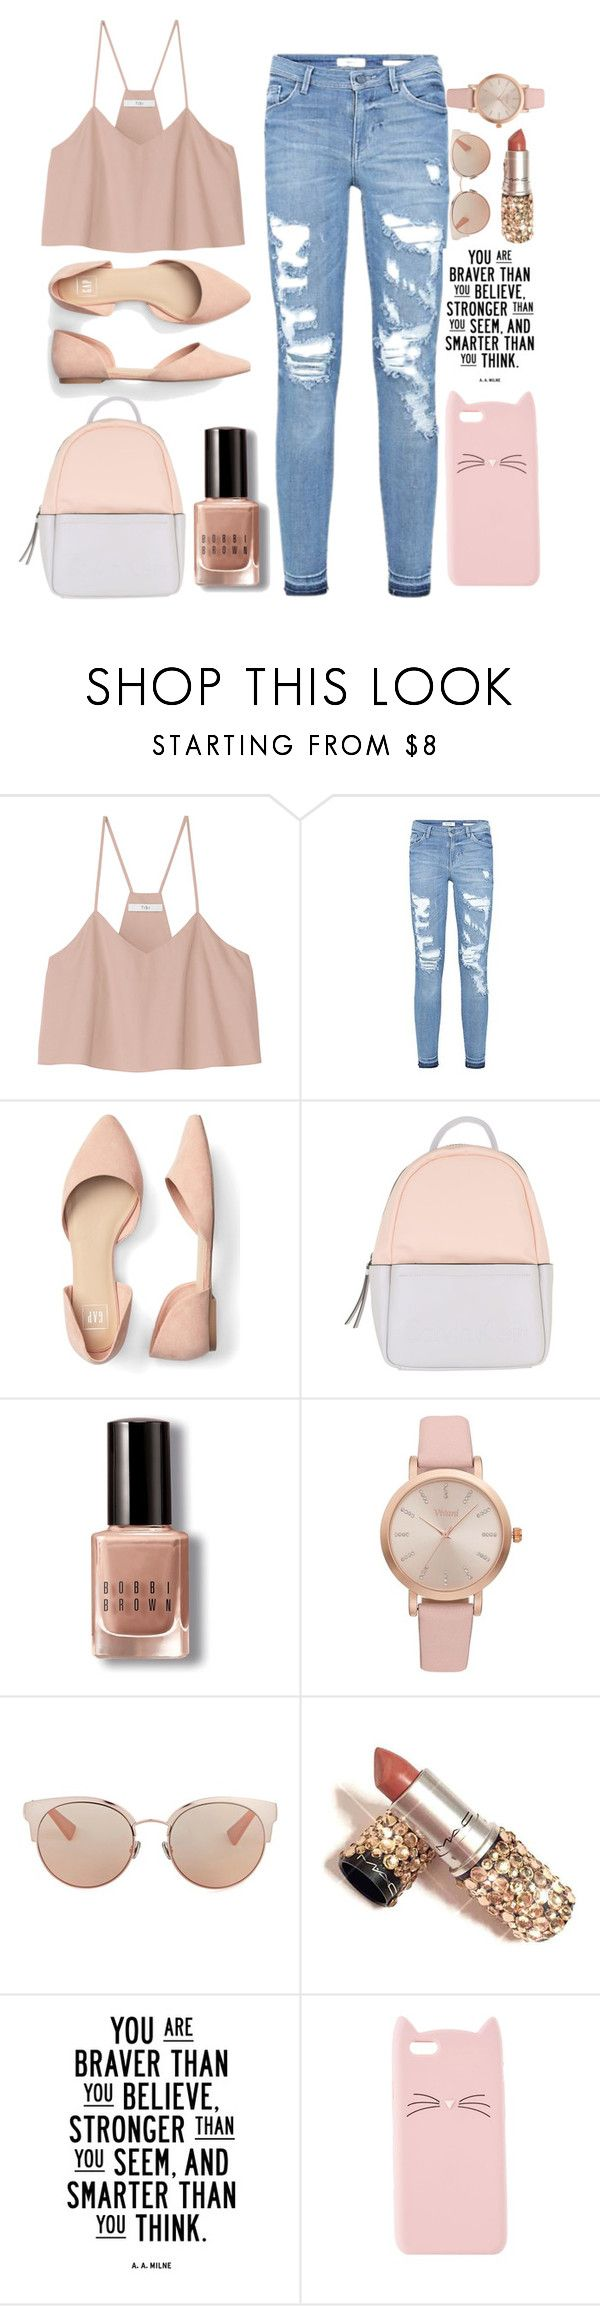 """""""In The Middle Of The Night, In My Dreams..."""" by summertime-sadness ❤ liked on Polyvore featuring TIBI, Calvin Klein, Bobbi Brown Cosmetics, Vivani, Christian Dior and Charlotte Russe"""